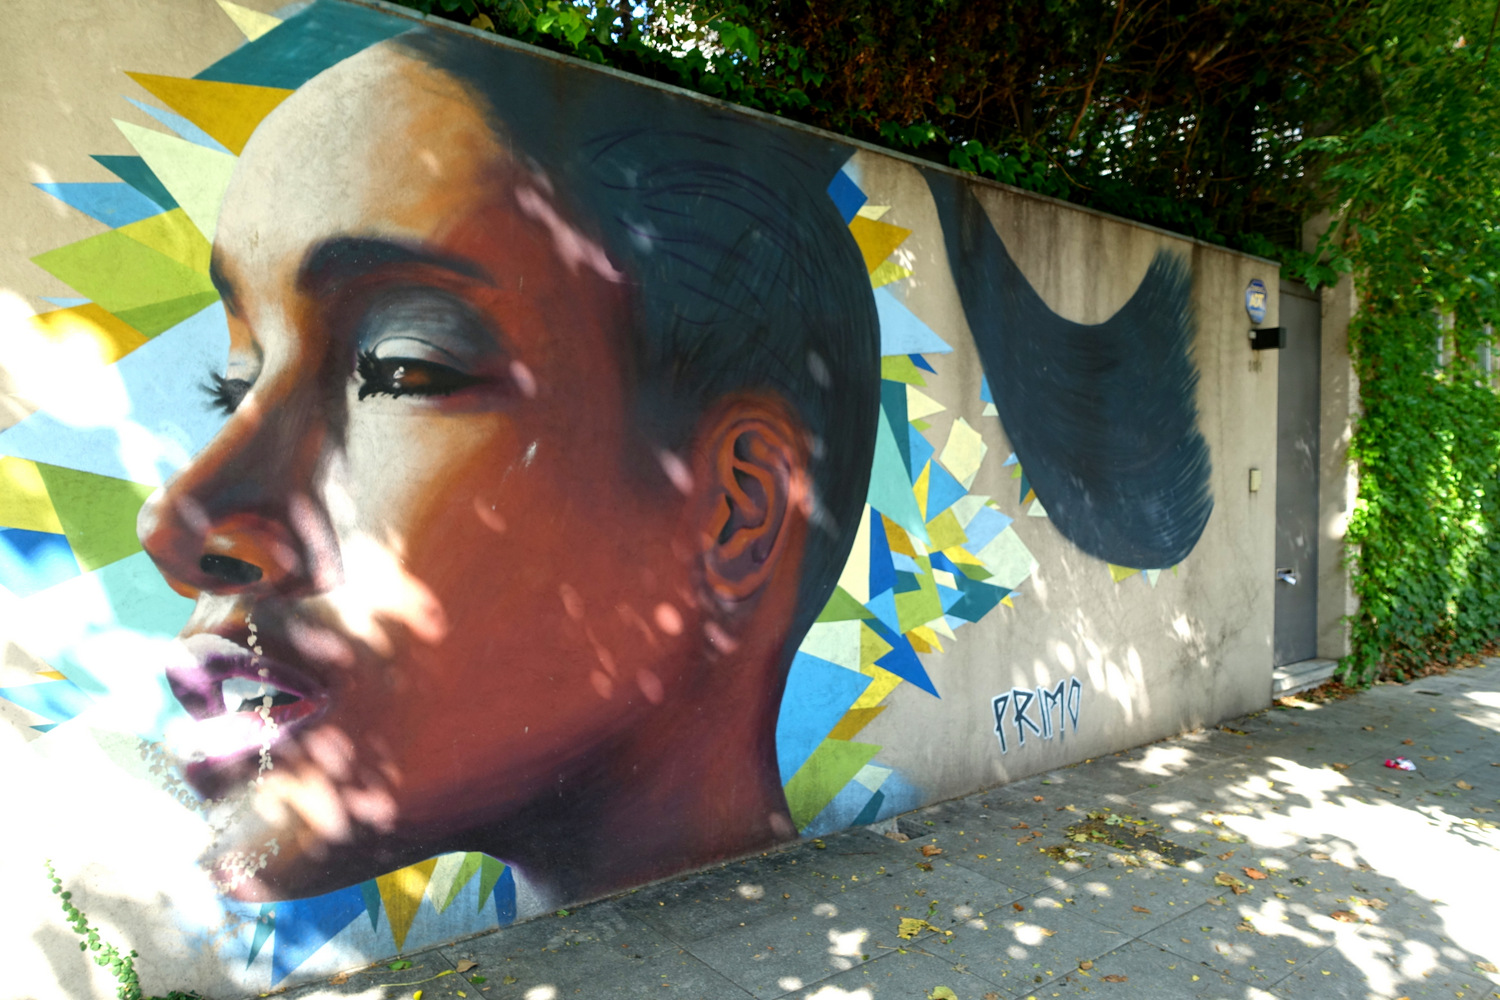 My 1st street art tour in Buenos Aires in photos.